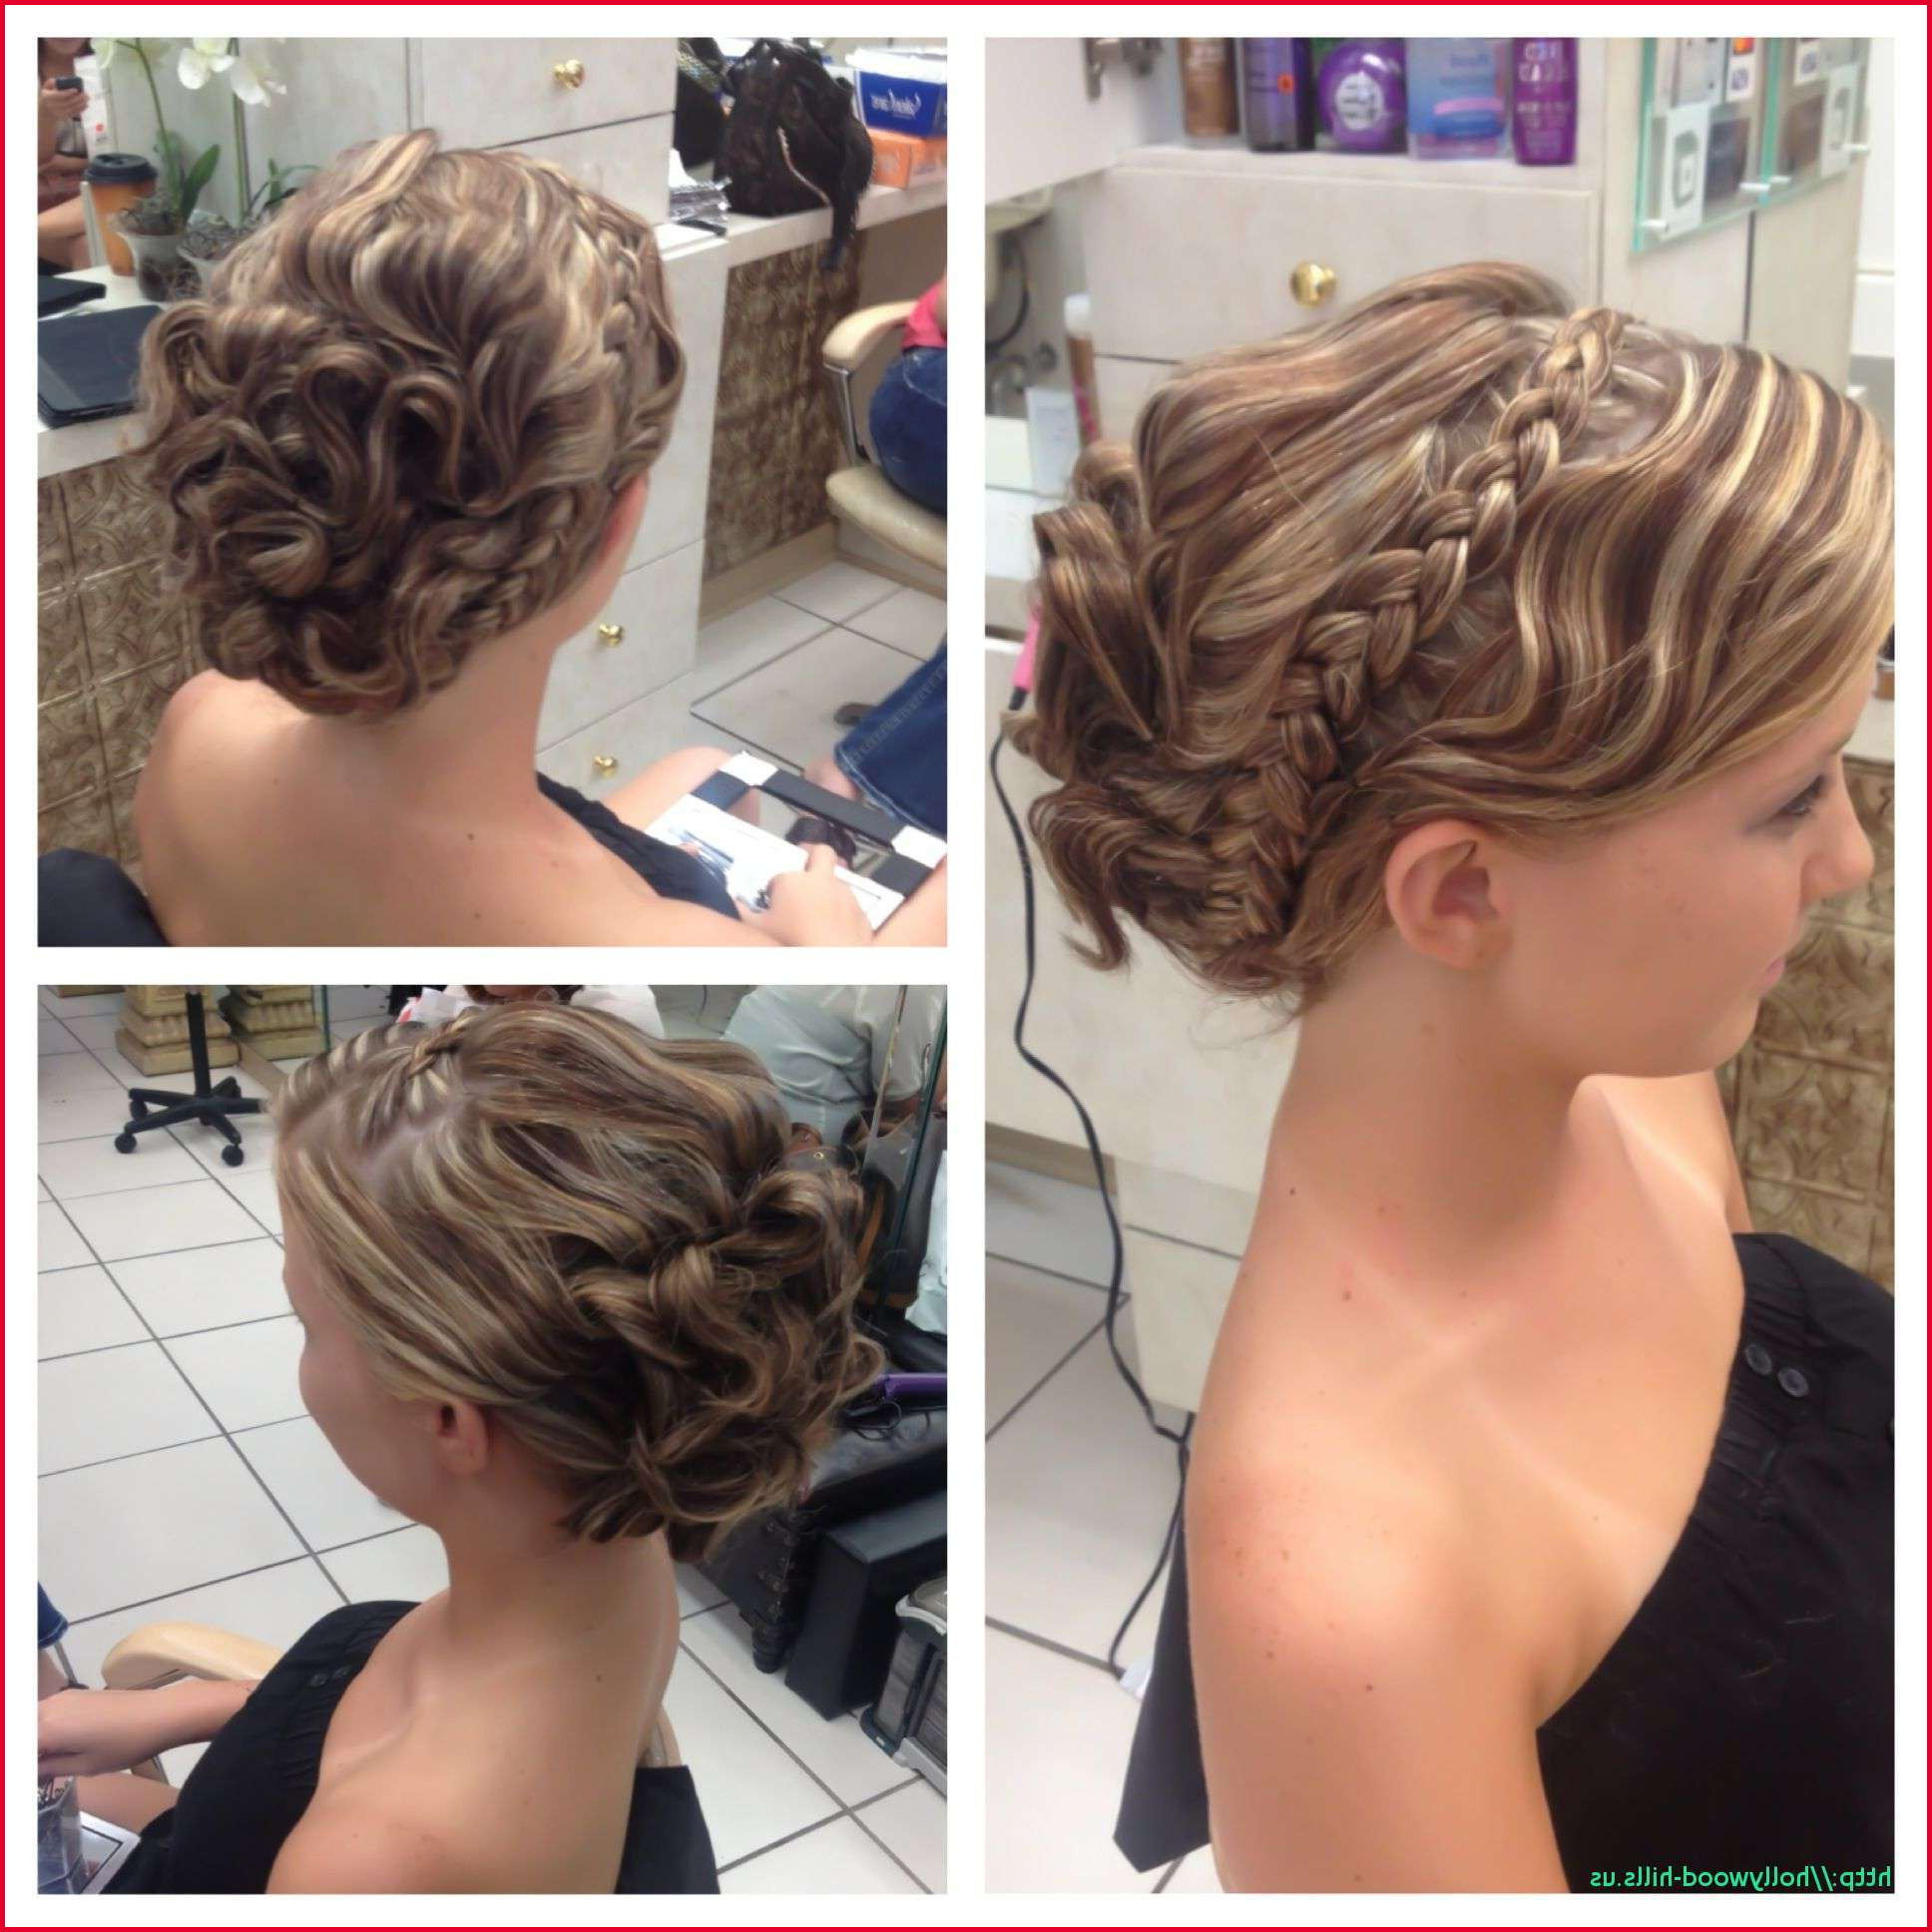 Cute Hairstyles For Homecoming Medium Hair 250096 Cute Hairstyles For Current Homecoming Medium Hairstyles (View 5 of 20)